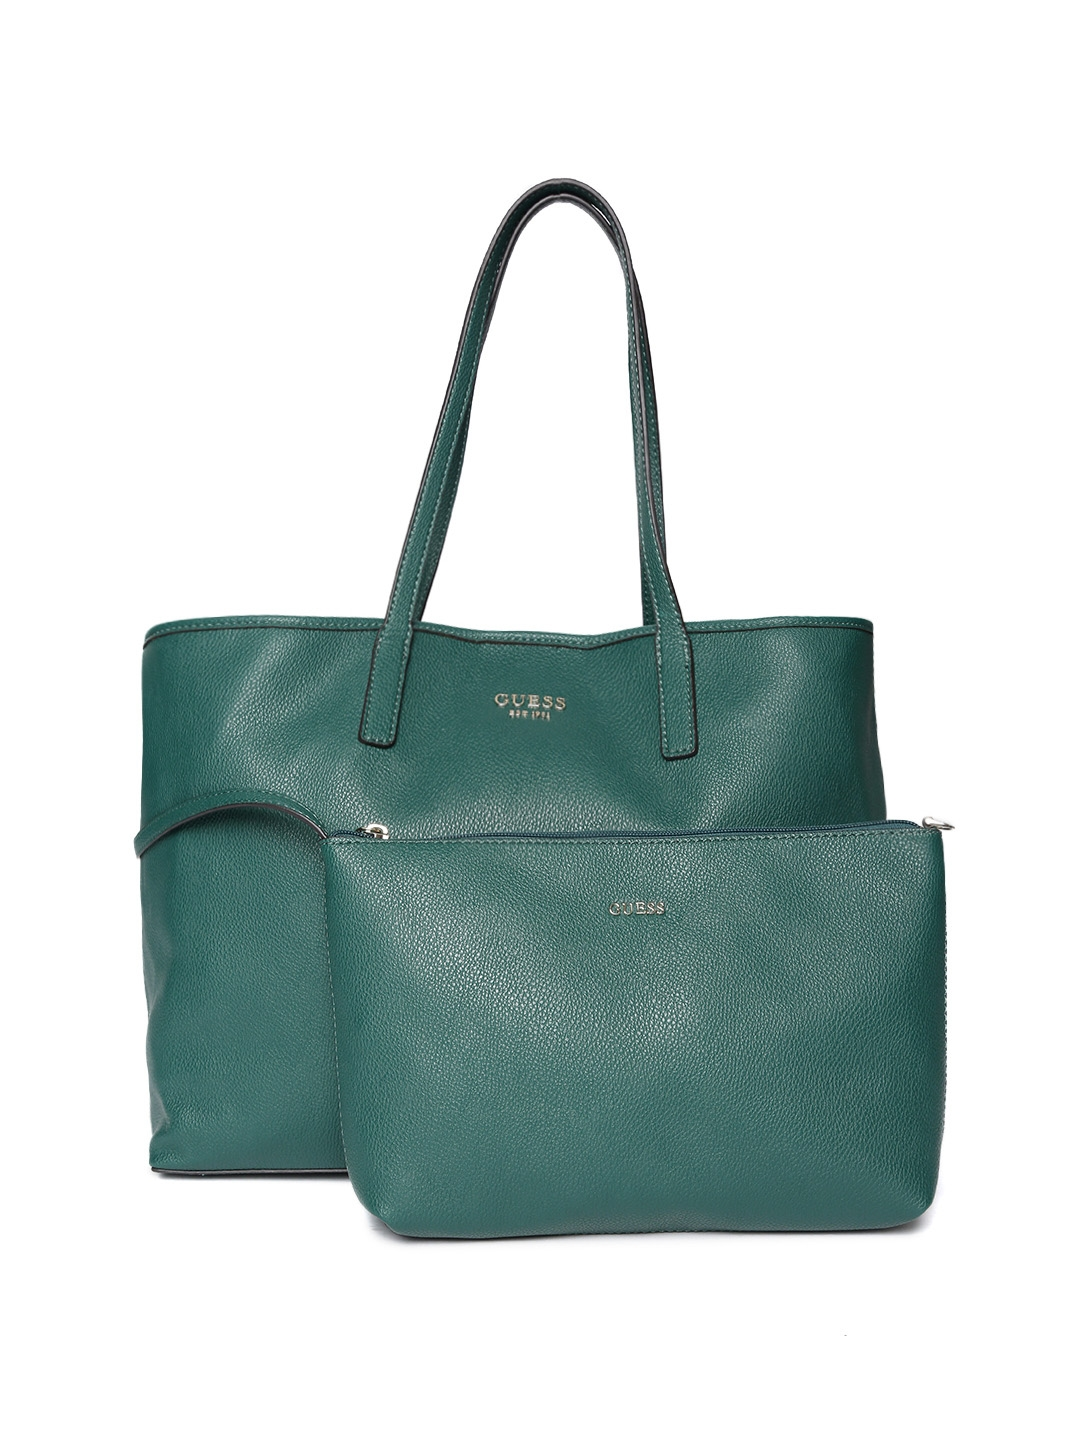 8e40fab74827 Buy GUESS Green Solid Shoulder Bag With Pouch - Handbags for Women ...